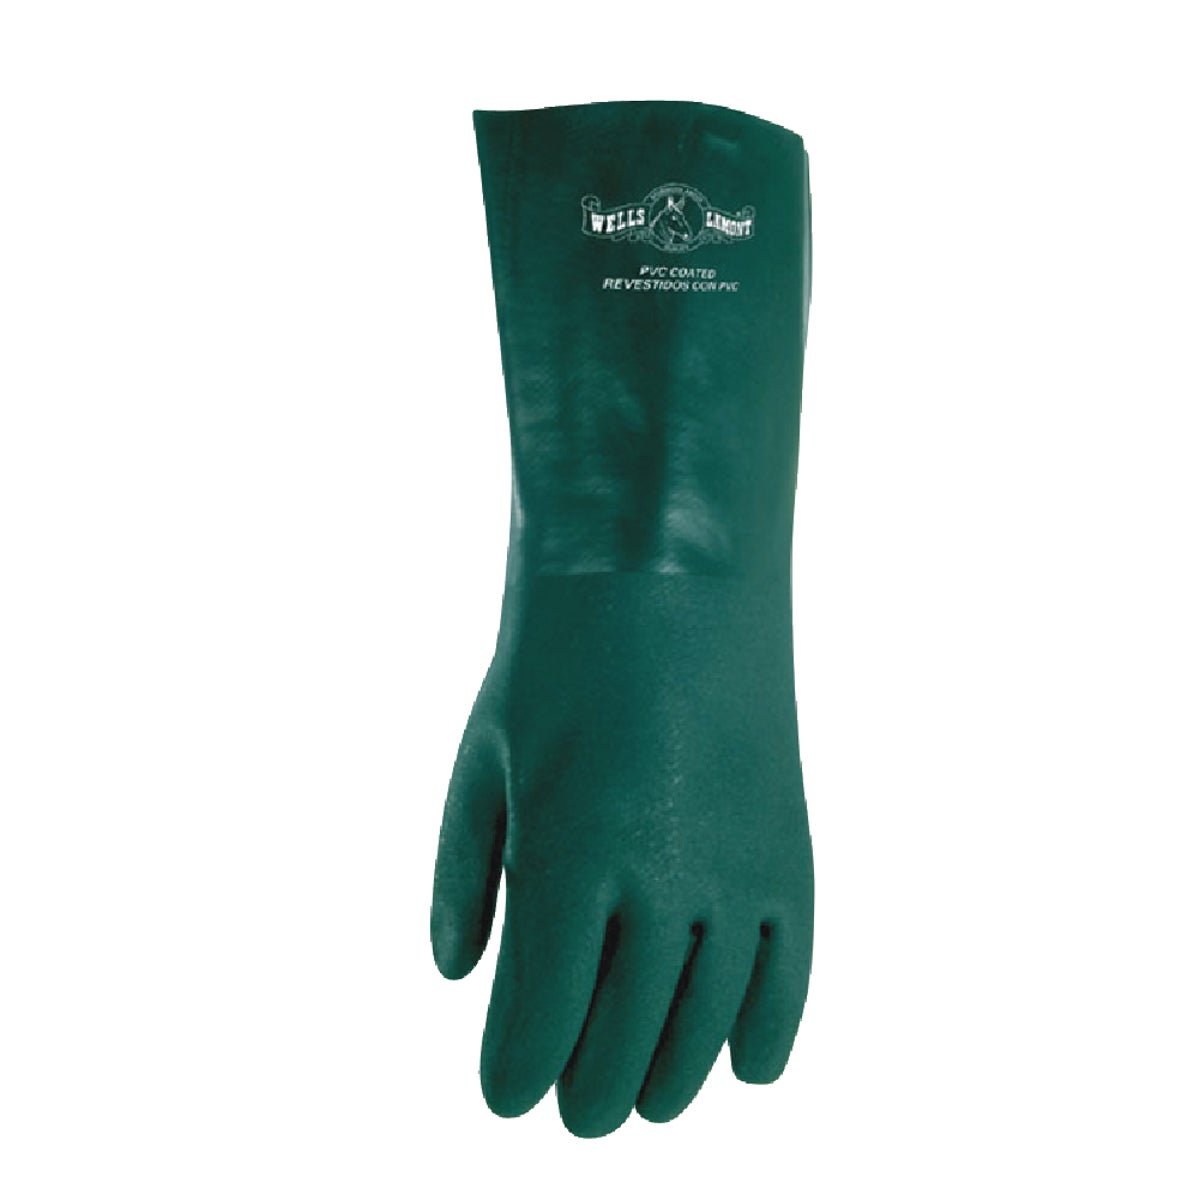 GREEN PVC COATED GLOVE - 167L by Wells Lamont